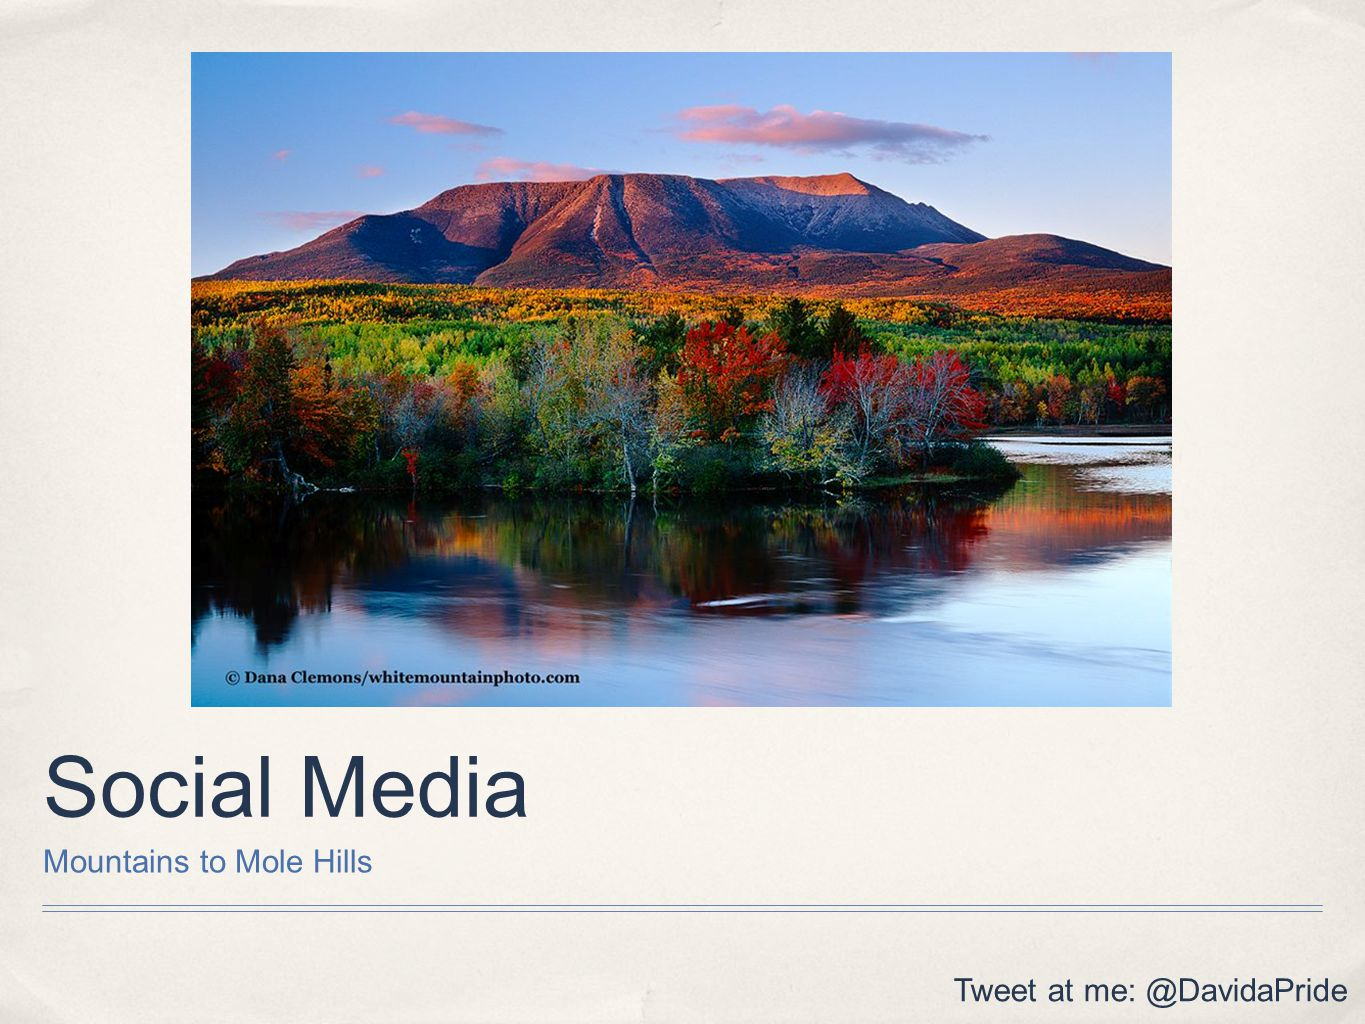 Social Media Mountains to Mole Hills Tweet at me: @DavidaPride